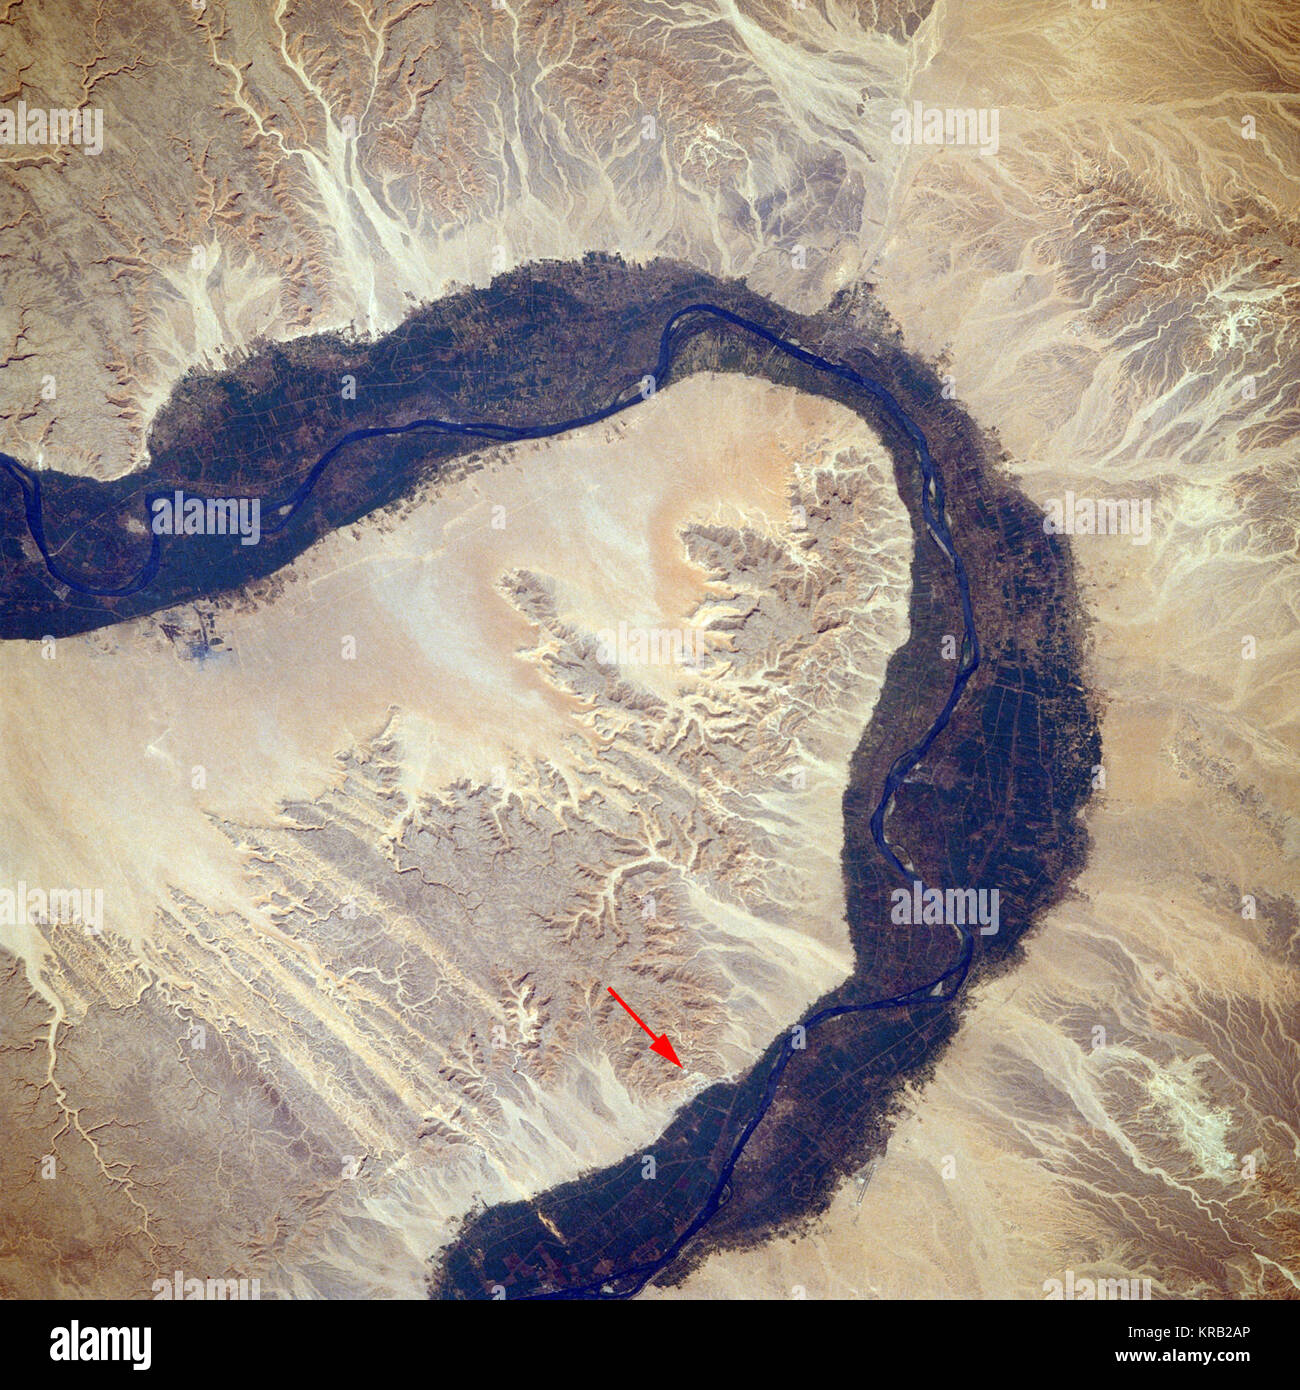 Map Of Amun Parks In Usa on